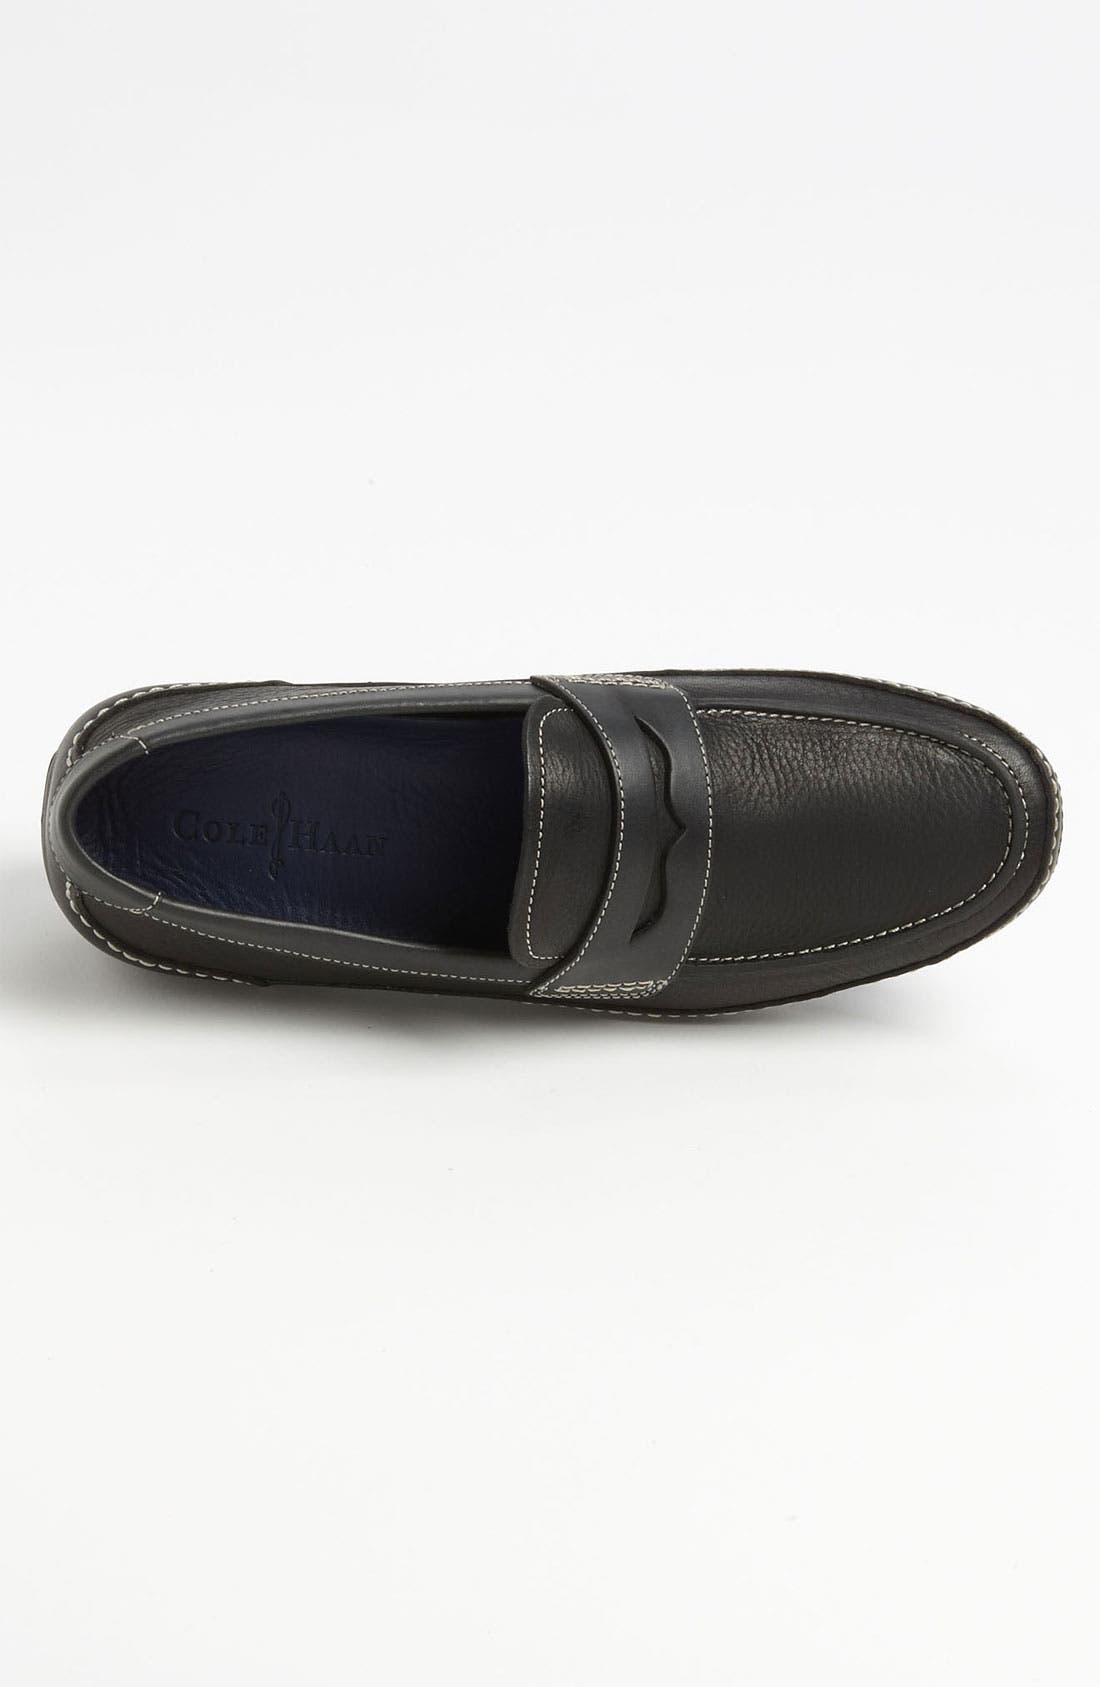 Alternate Image 3  - Cole Haan 'Air Mitchell' Driving Shoe   (Men)